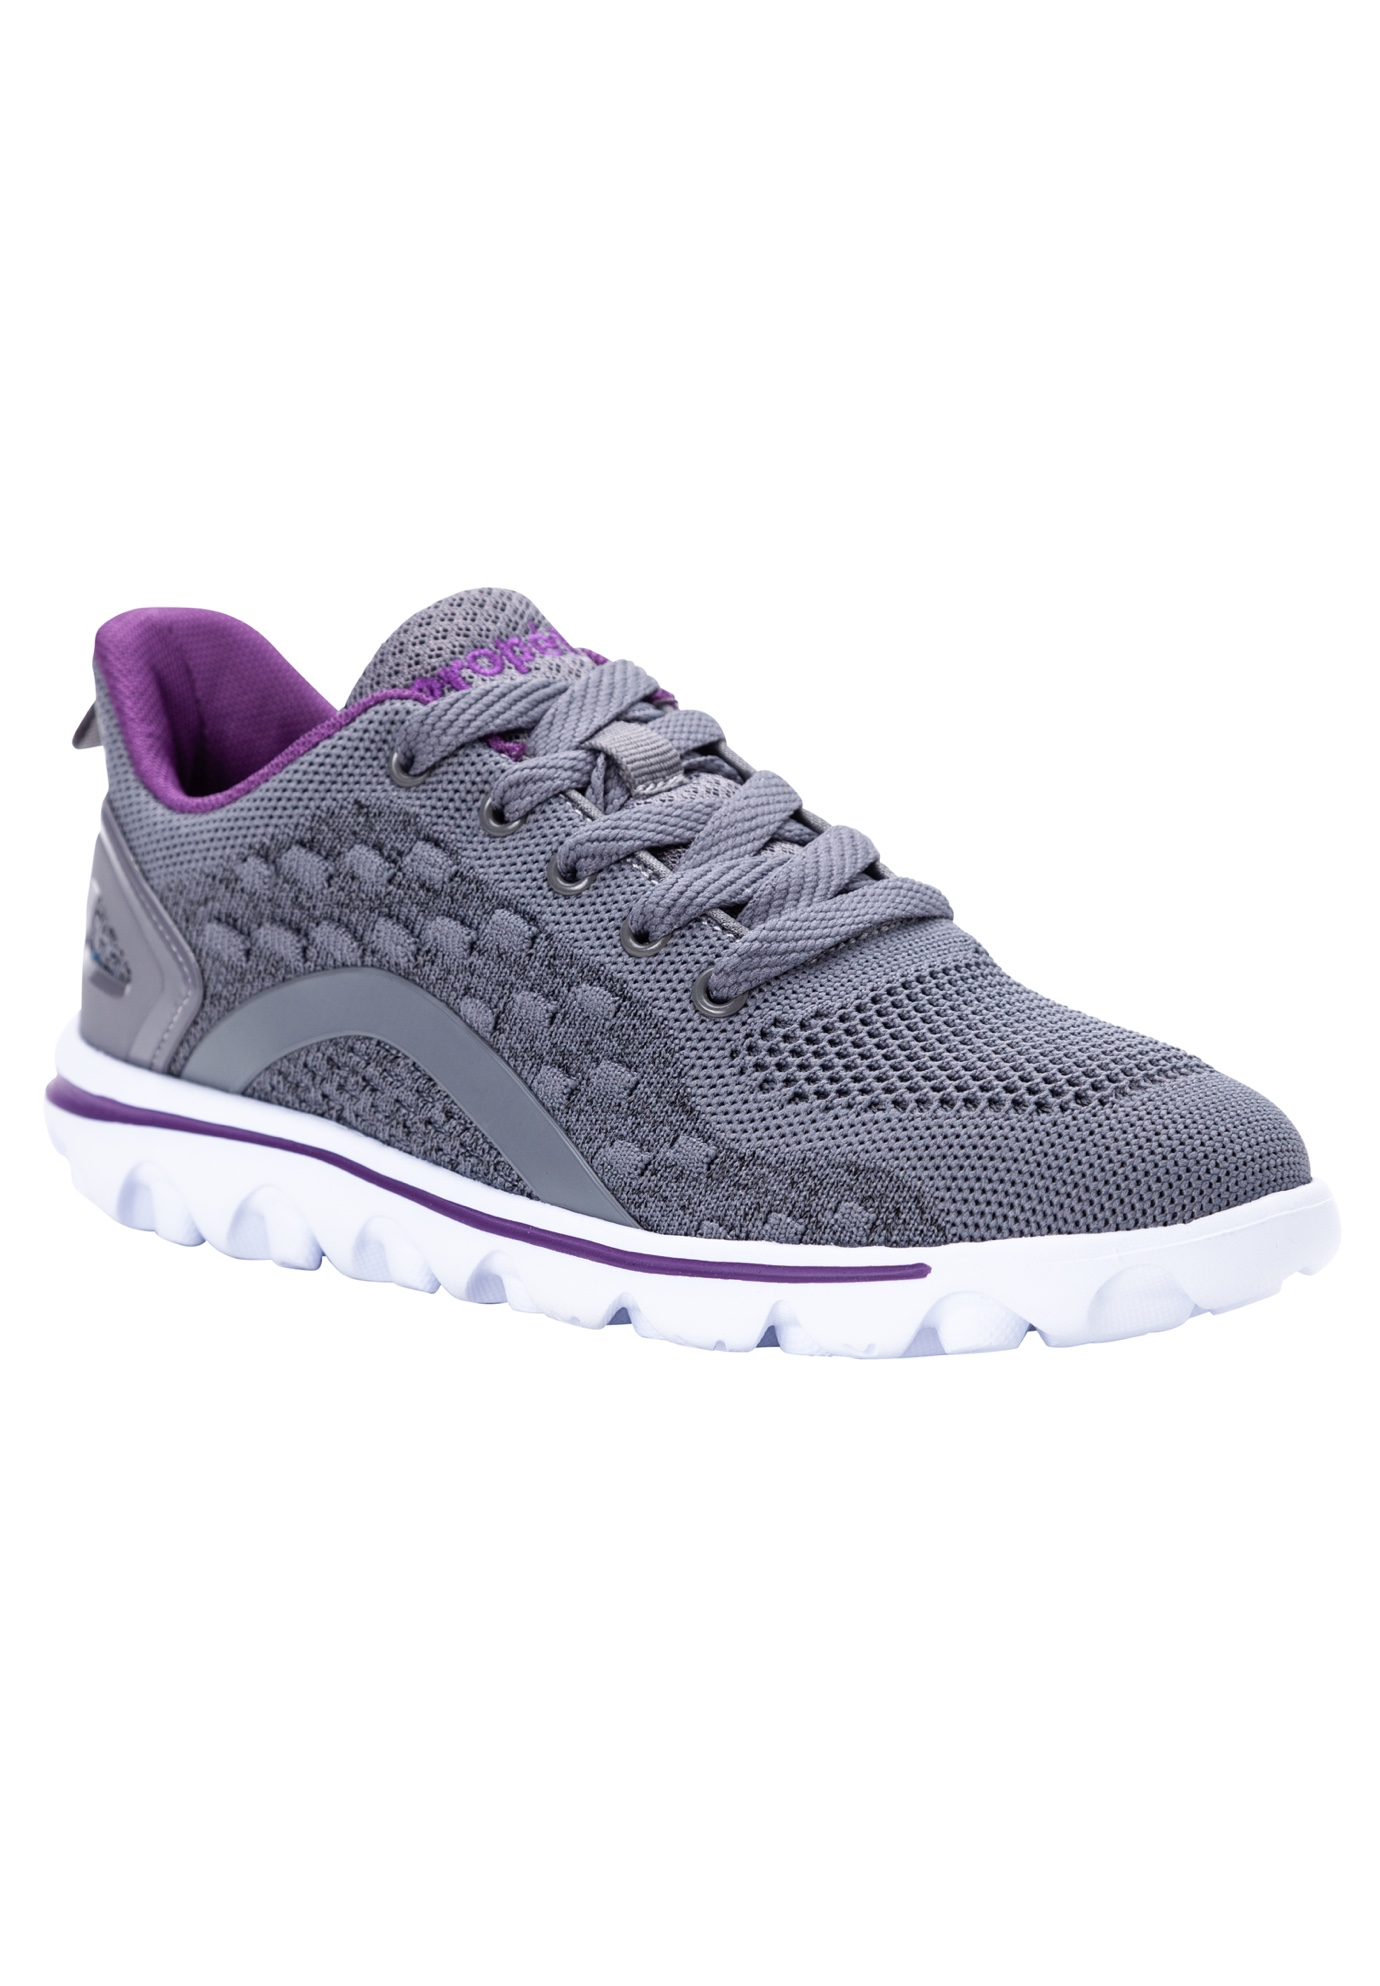 Travelactiv Axial Walking Shoe Sneaker ,